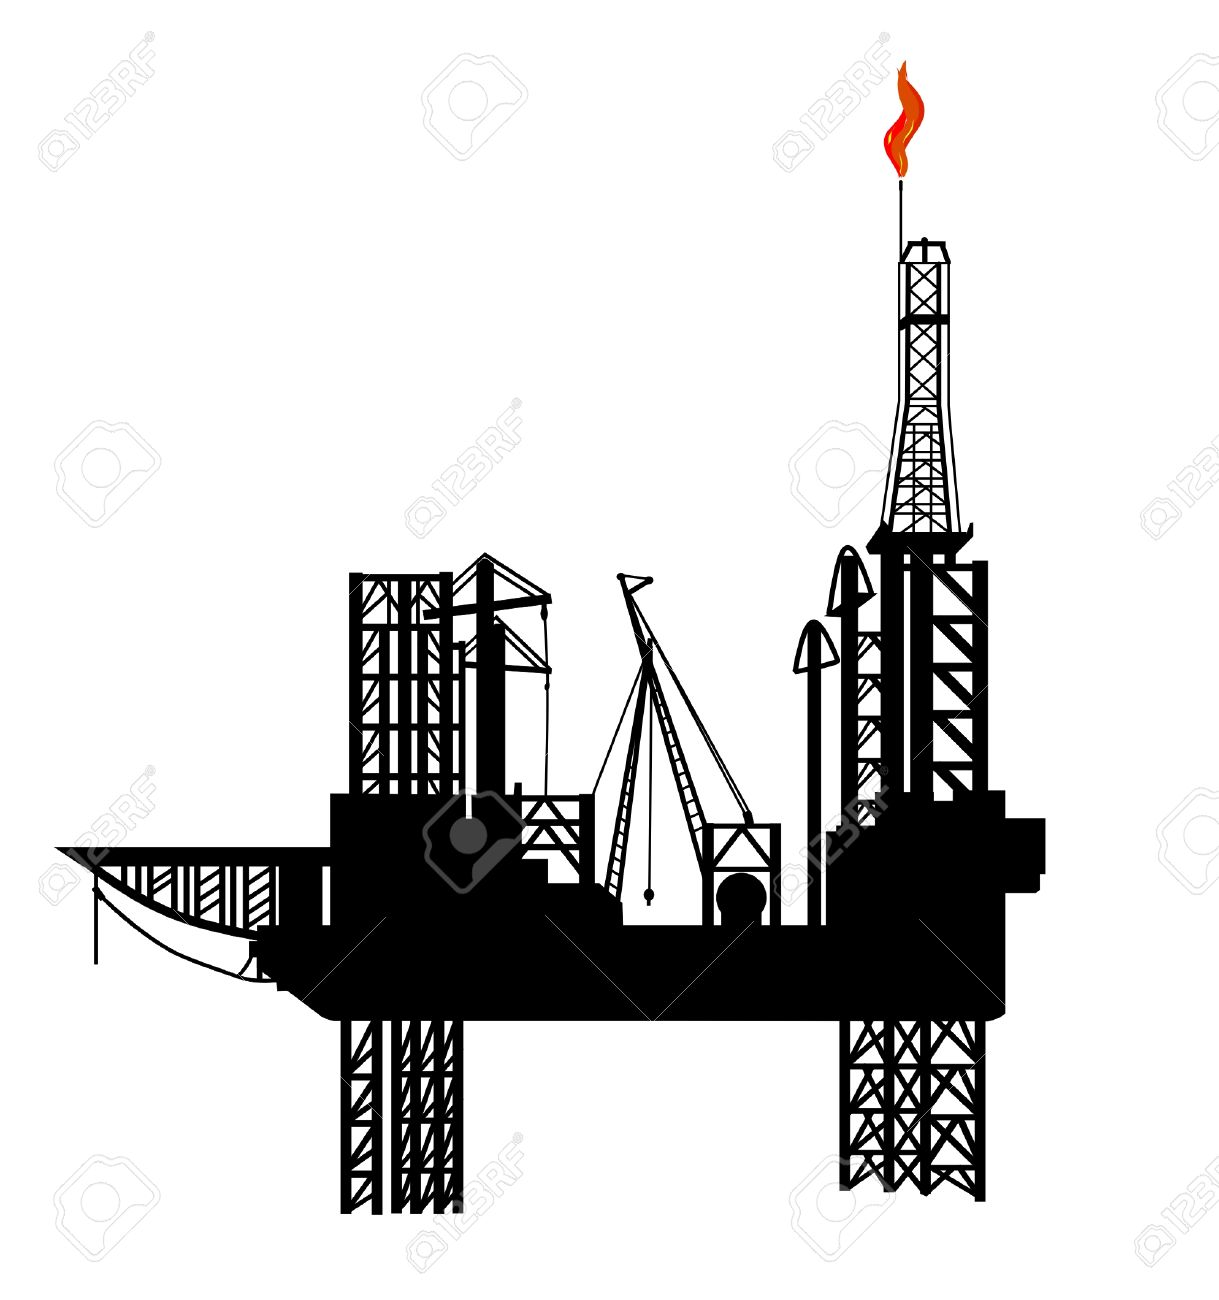 Drilling rig clipart free.